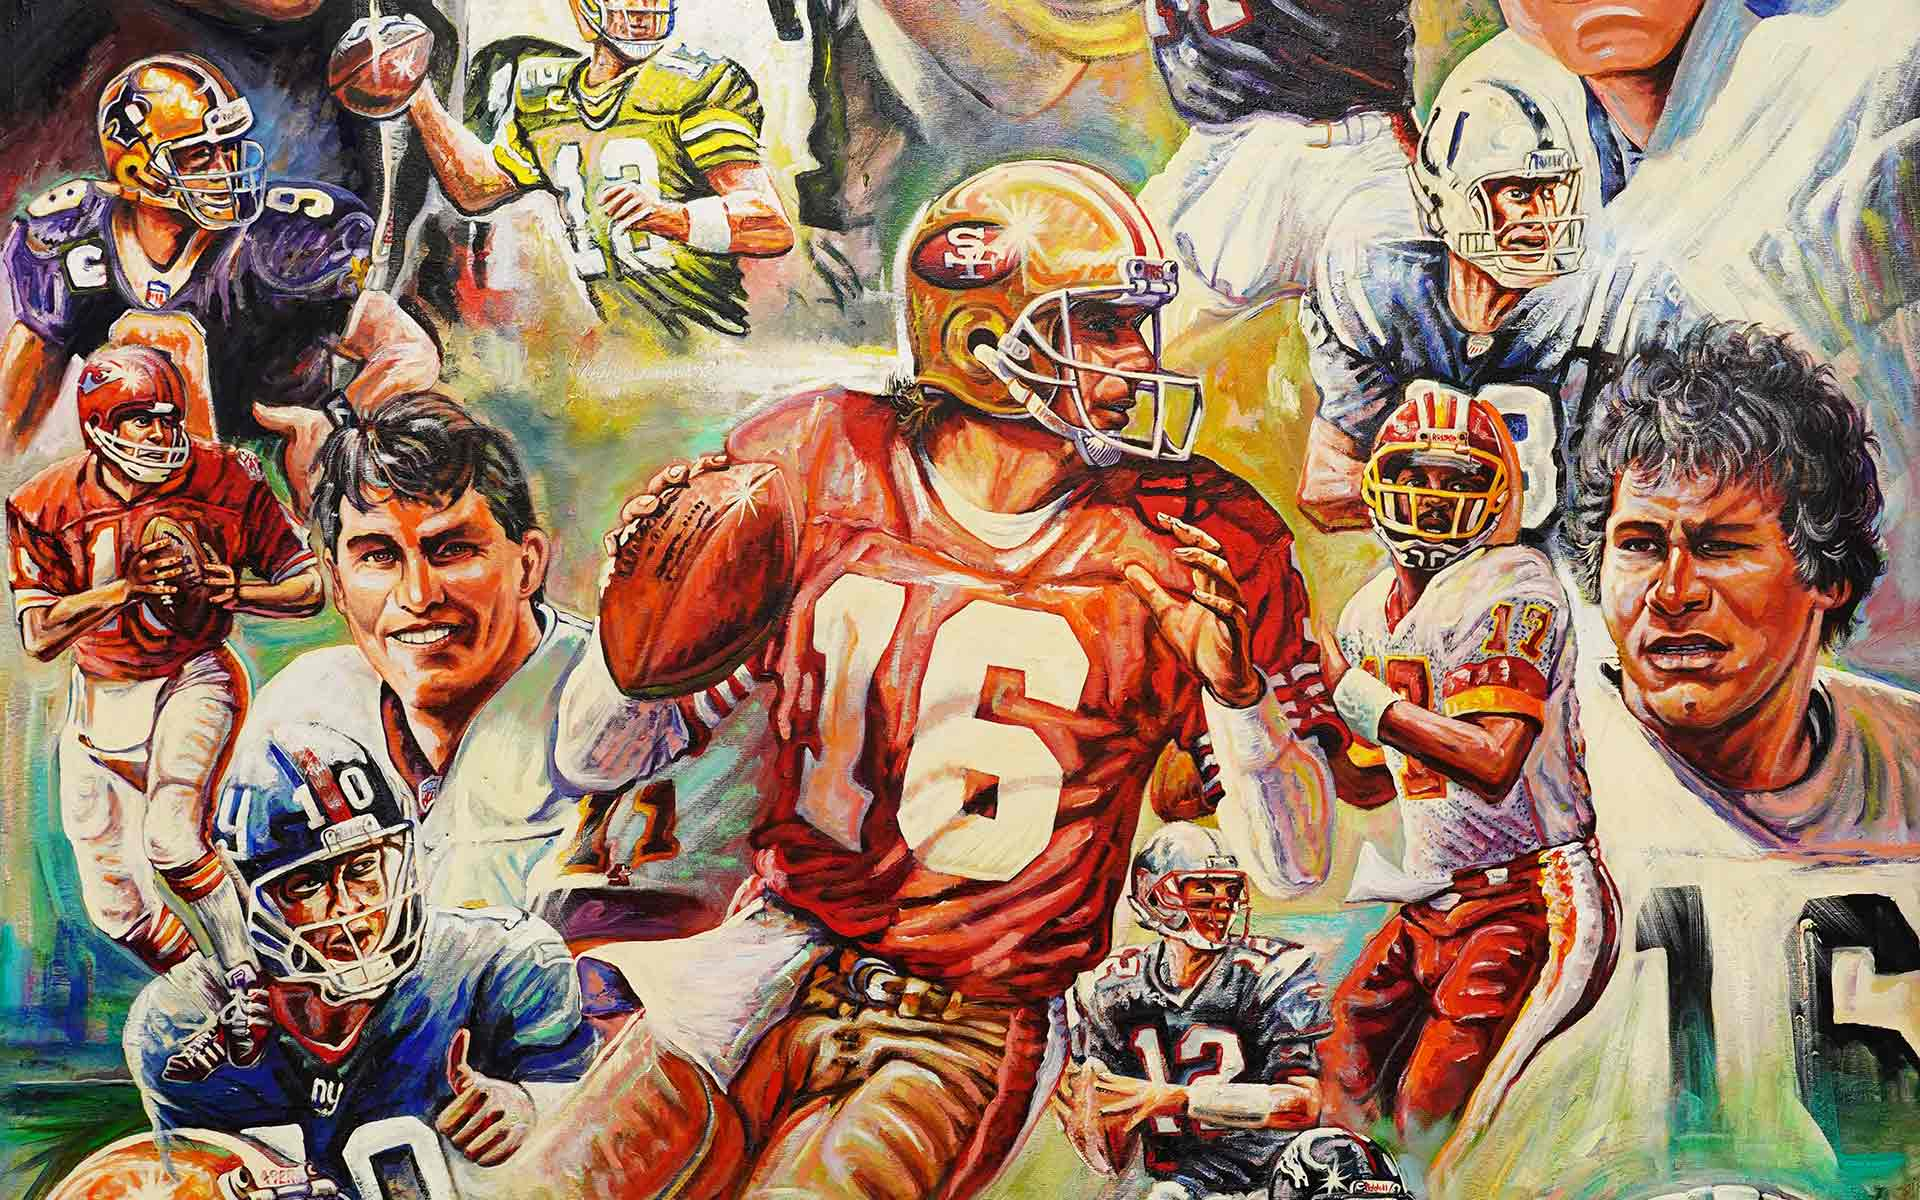 Gene Locklear Super Bowl artwork commissioned by the NFL and shown on television.